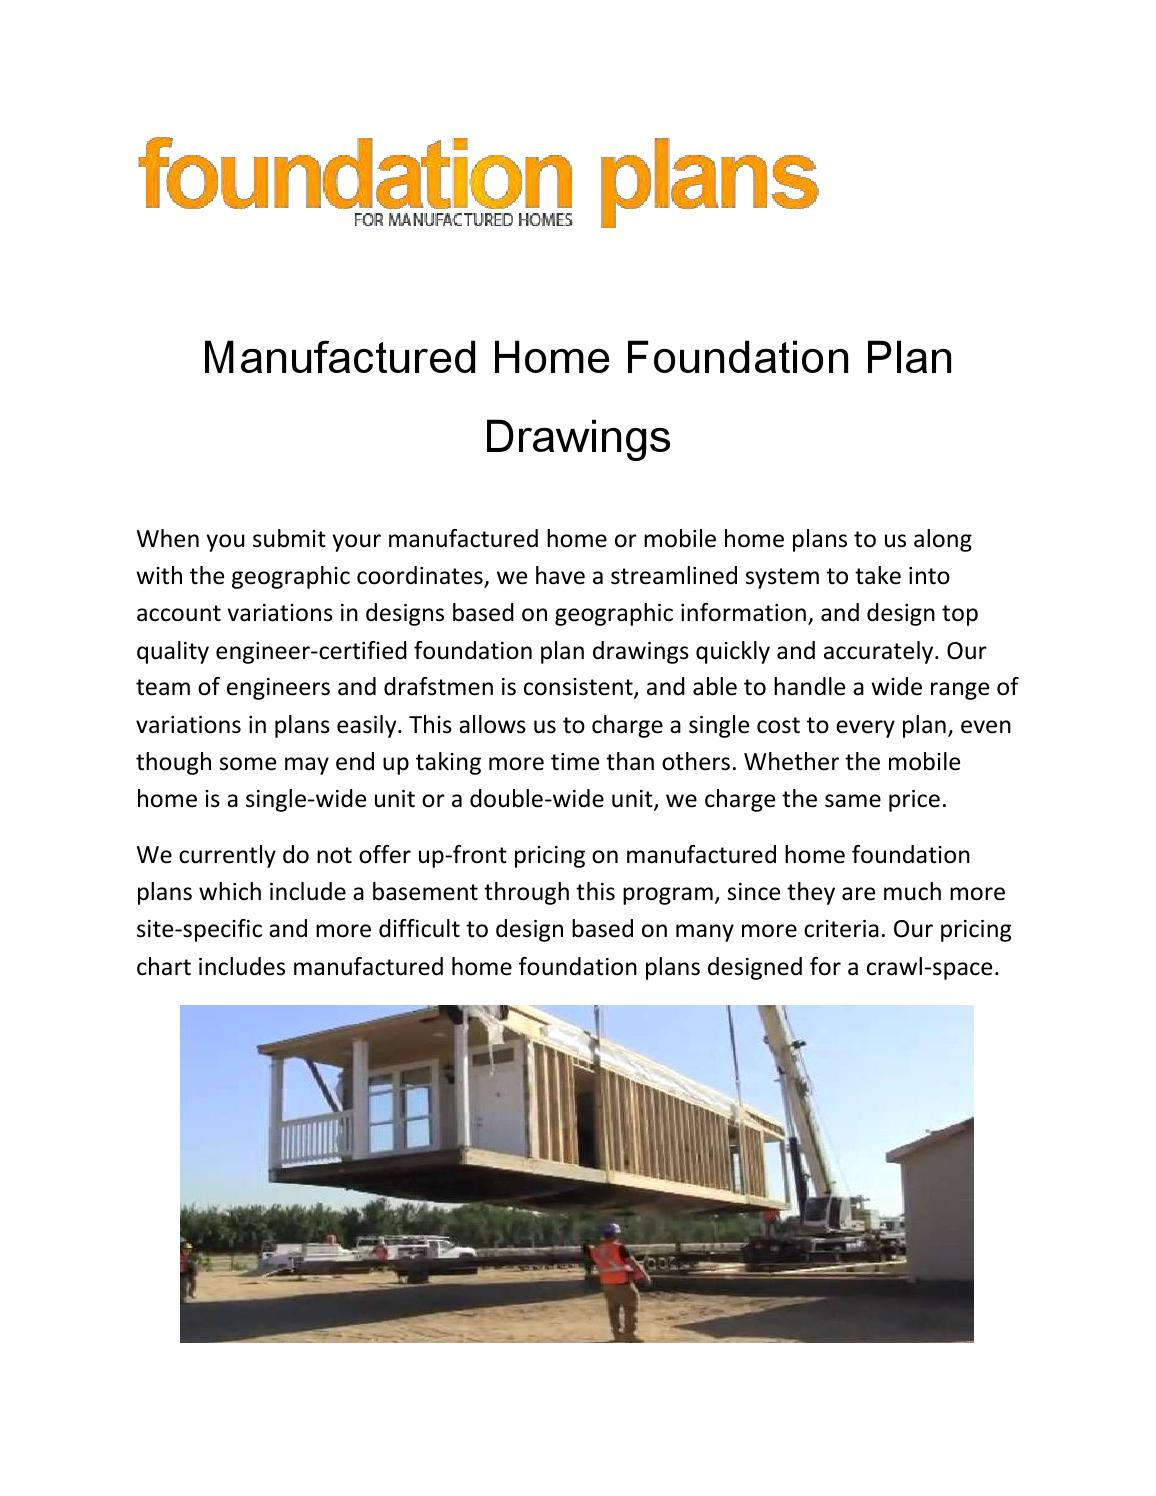 Manufactured home foundation plan drawings by foundation for Home foundation plan